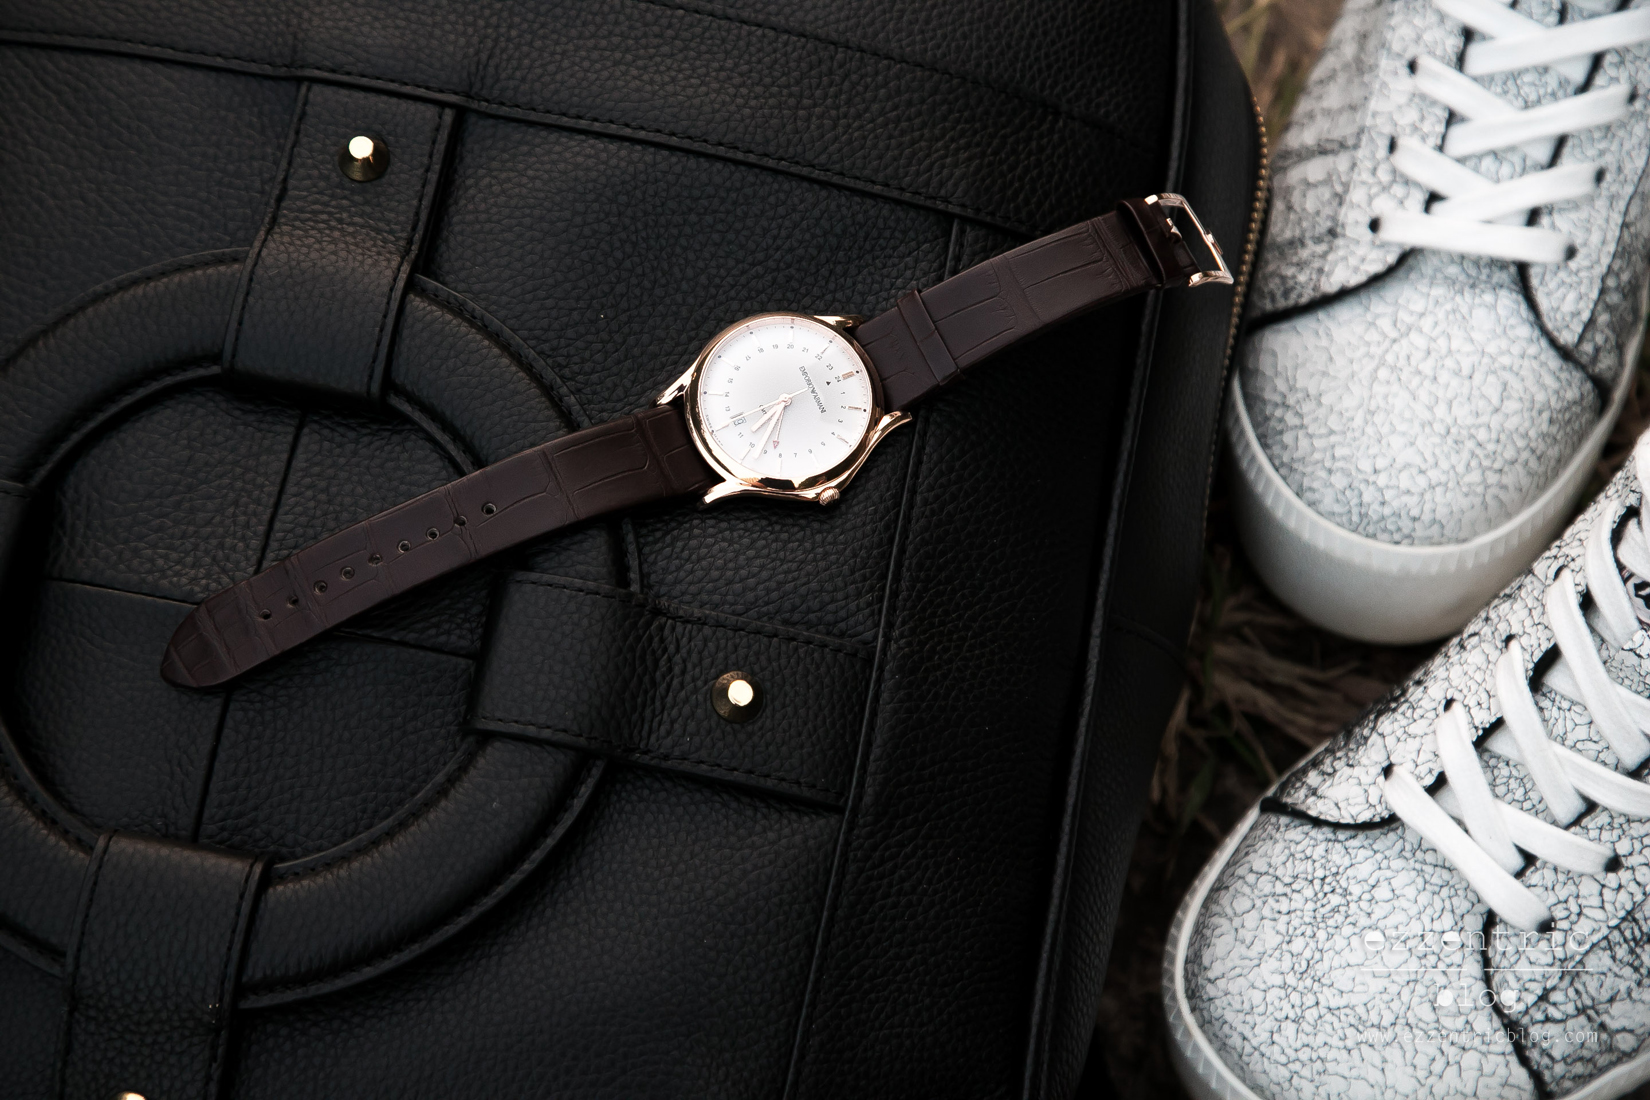 Armani Watch , Ash Platform Sneakers , Backpack Outfit 05